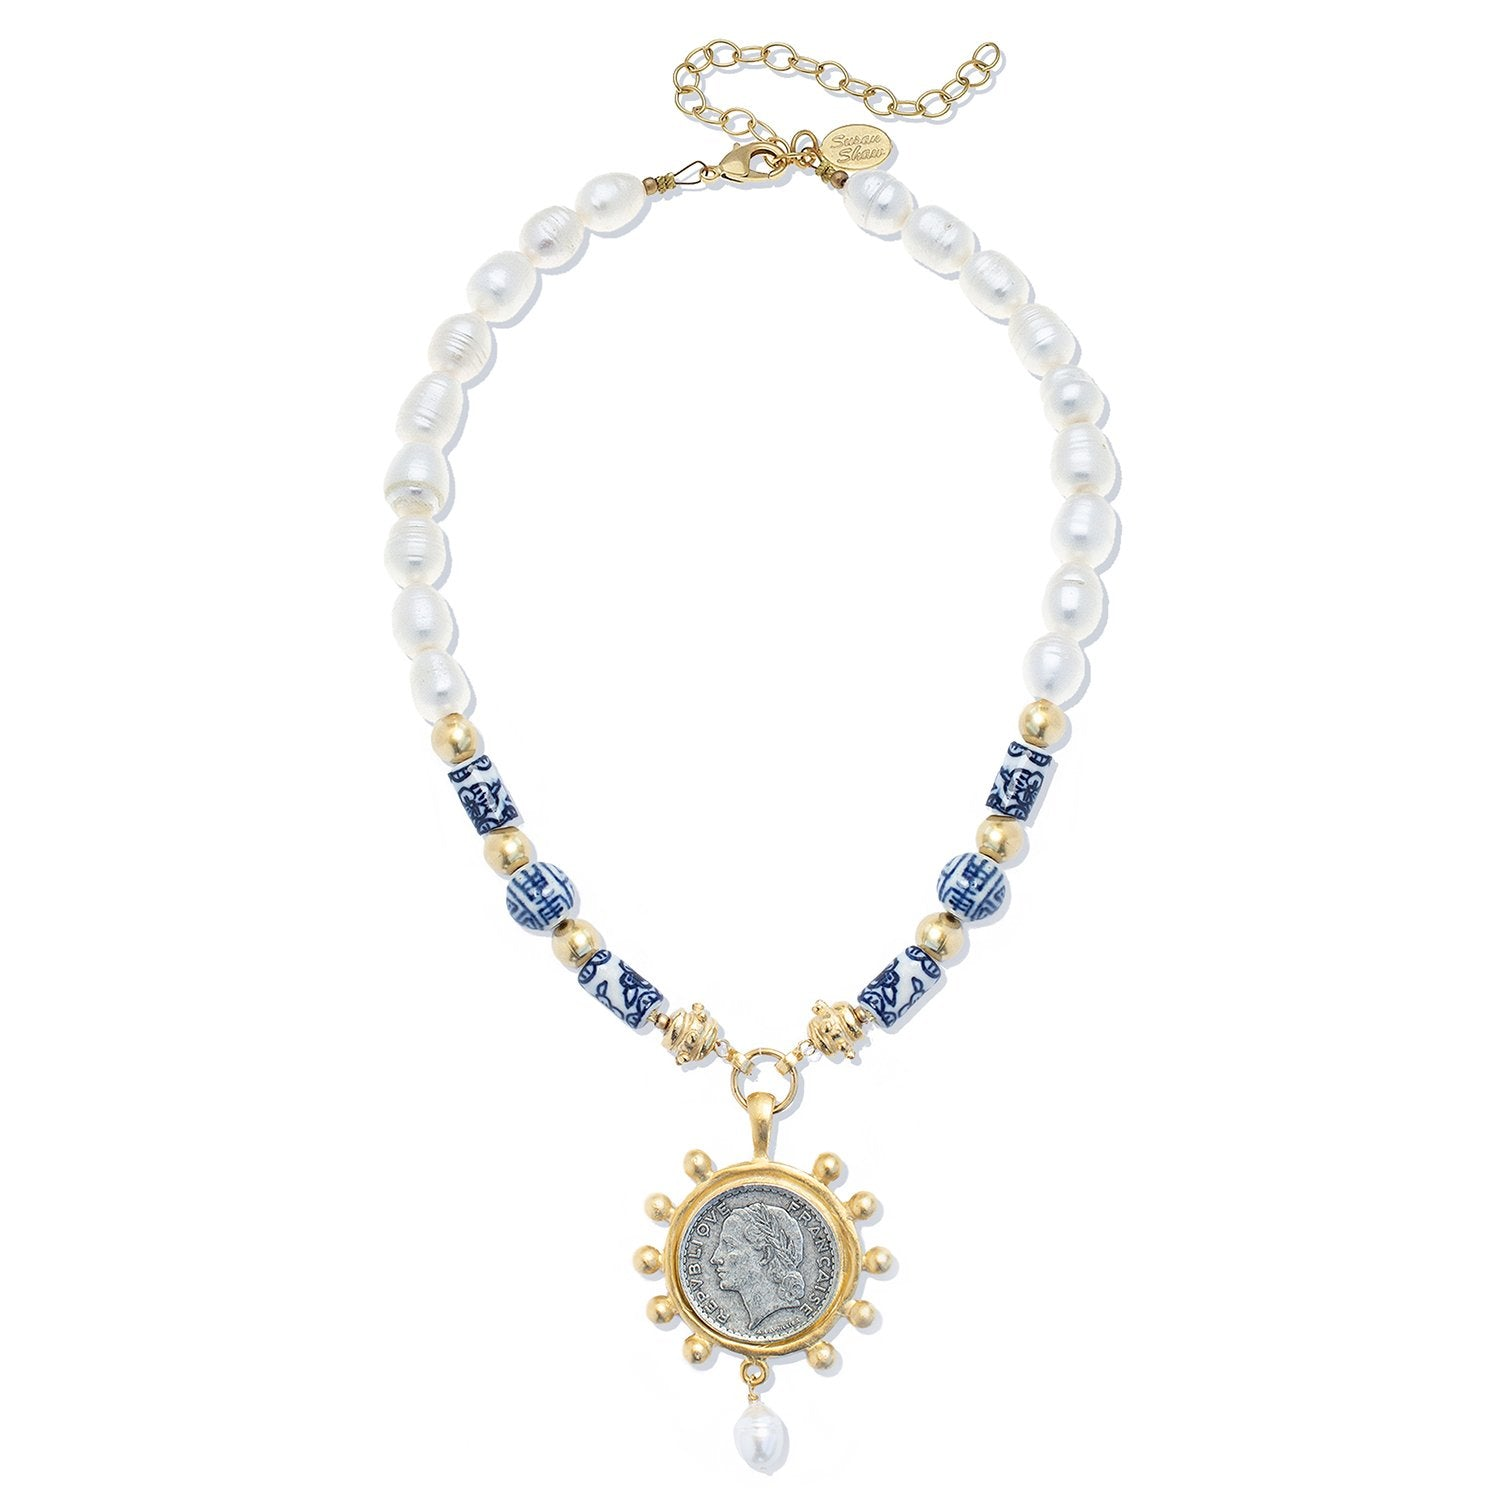 Blue & White French Franc Necklace